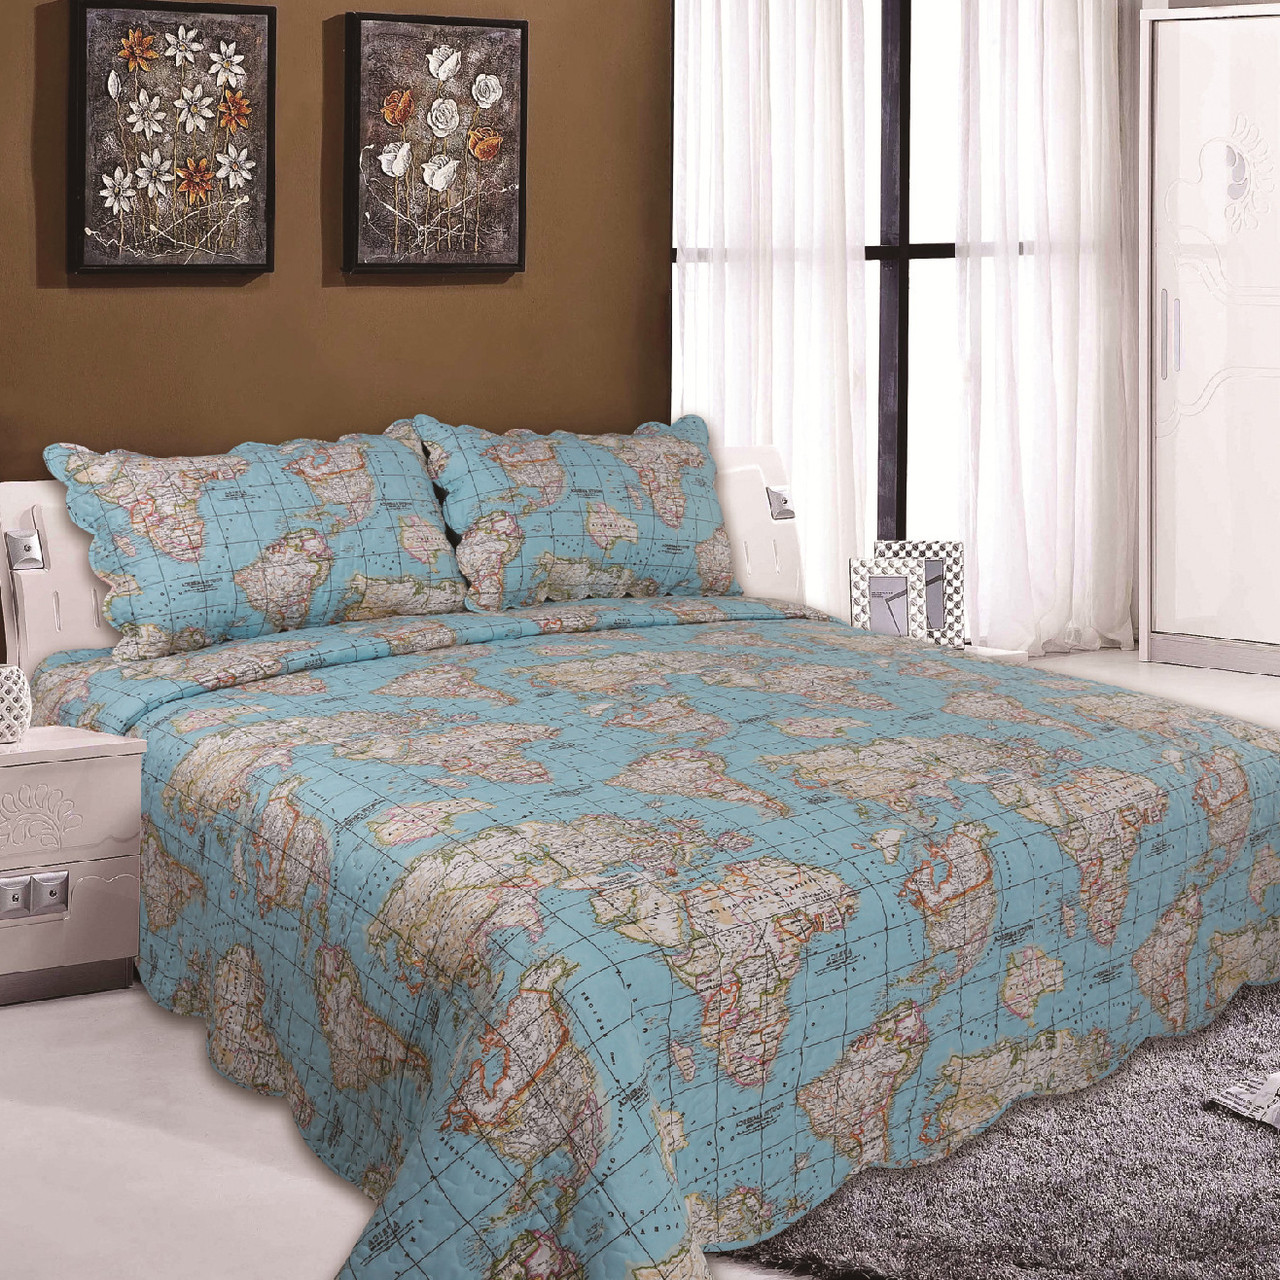 Digital Print World Map Quilted Bedspread on map sheet, map home decor, map drawing, map market garden, map paper, map quilt, map furniture, map gallery wall, map blanket, map games, map travel, map office decor, map wallpaper, map room ideas, map pillow, map dishes, map crib set, map baby nursery, map shower curtain, map themed bedroom,